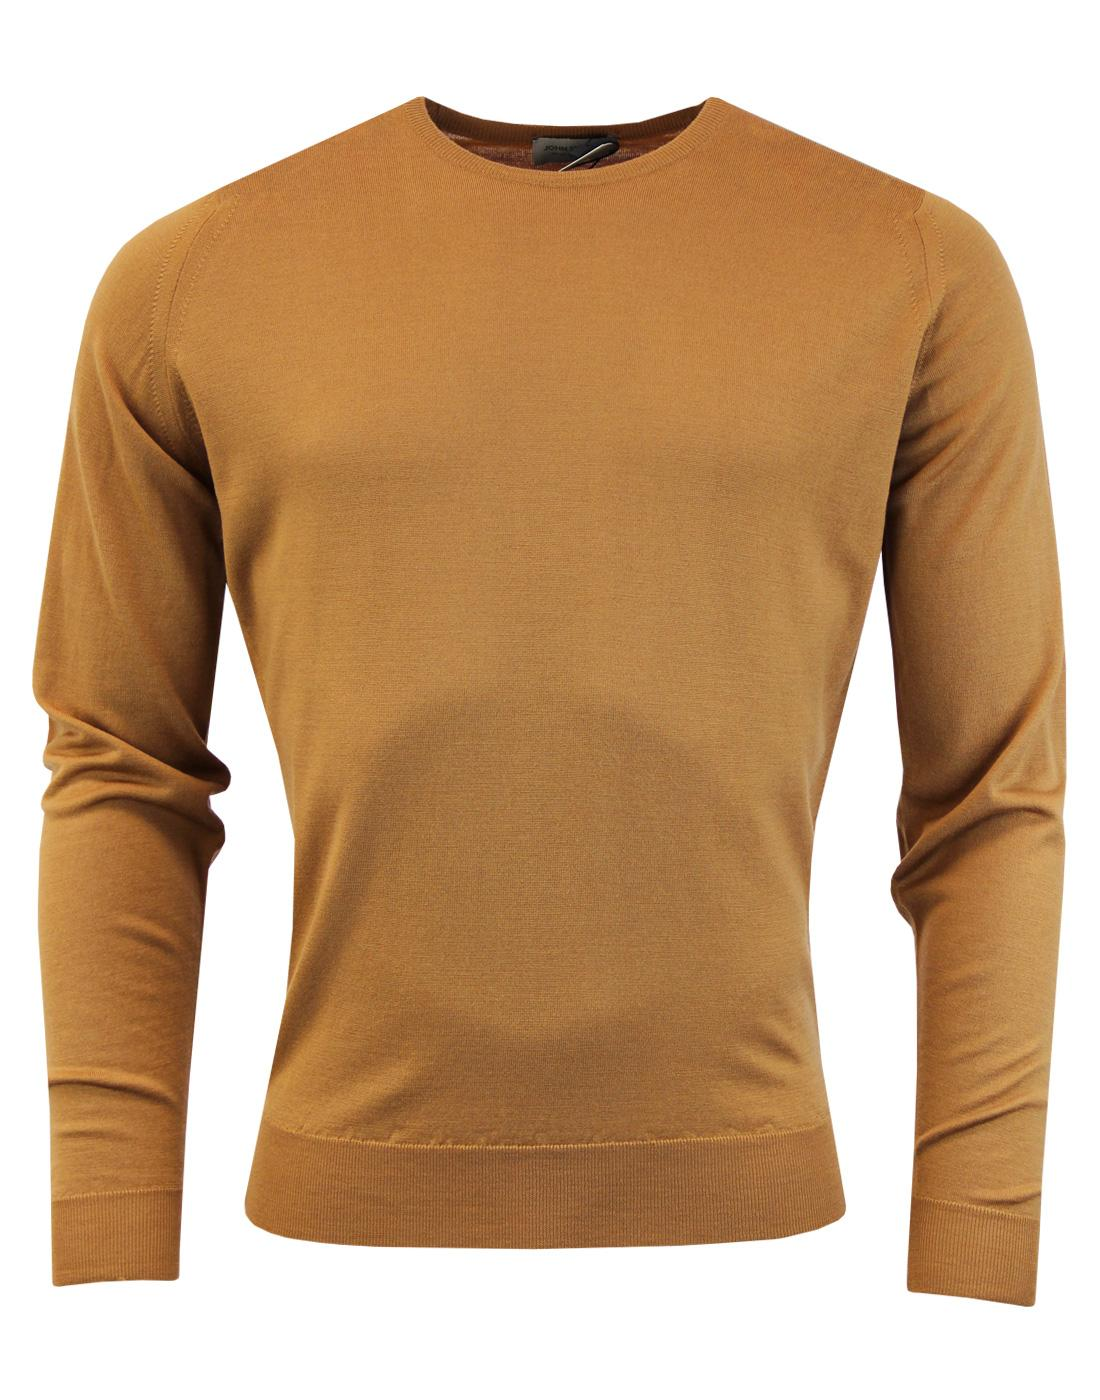 Lundy JOHN SMEDLEY Made in England Crew Jumper (C)